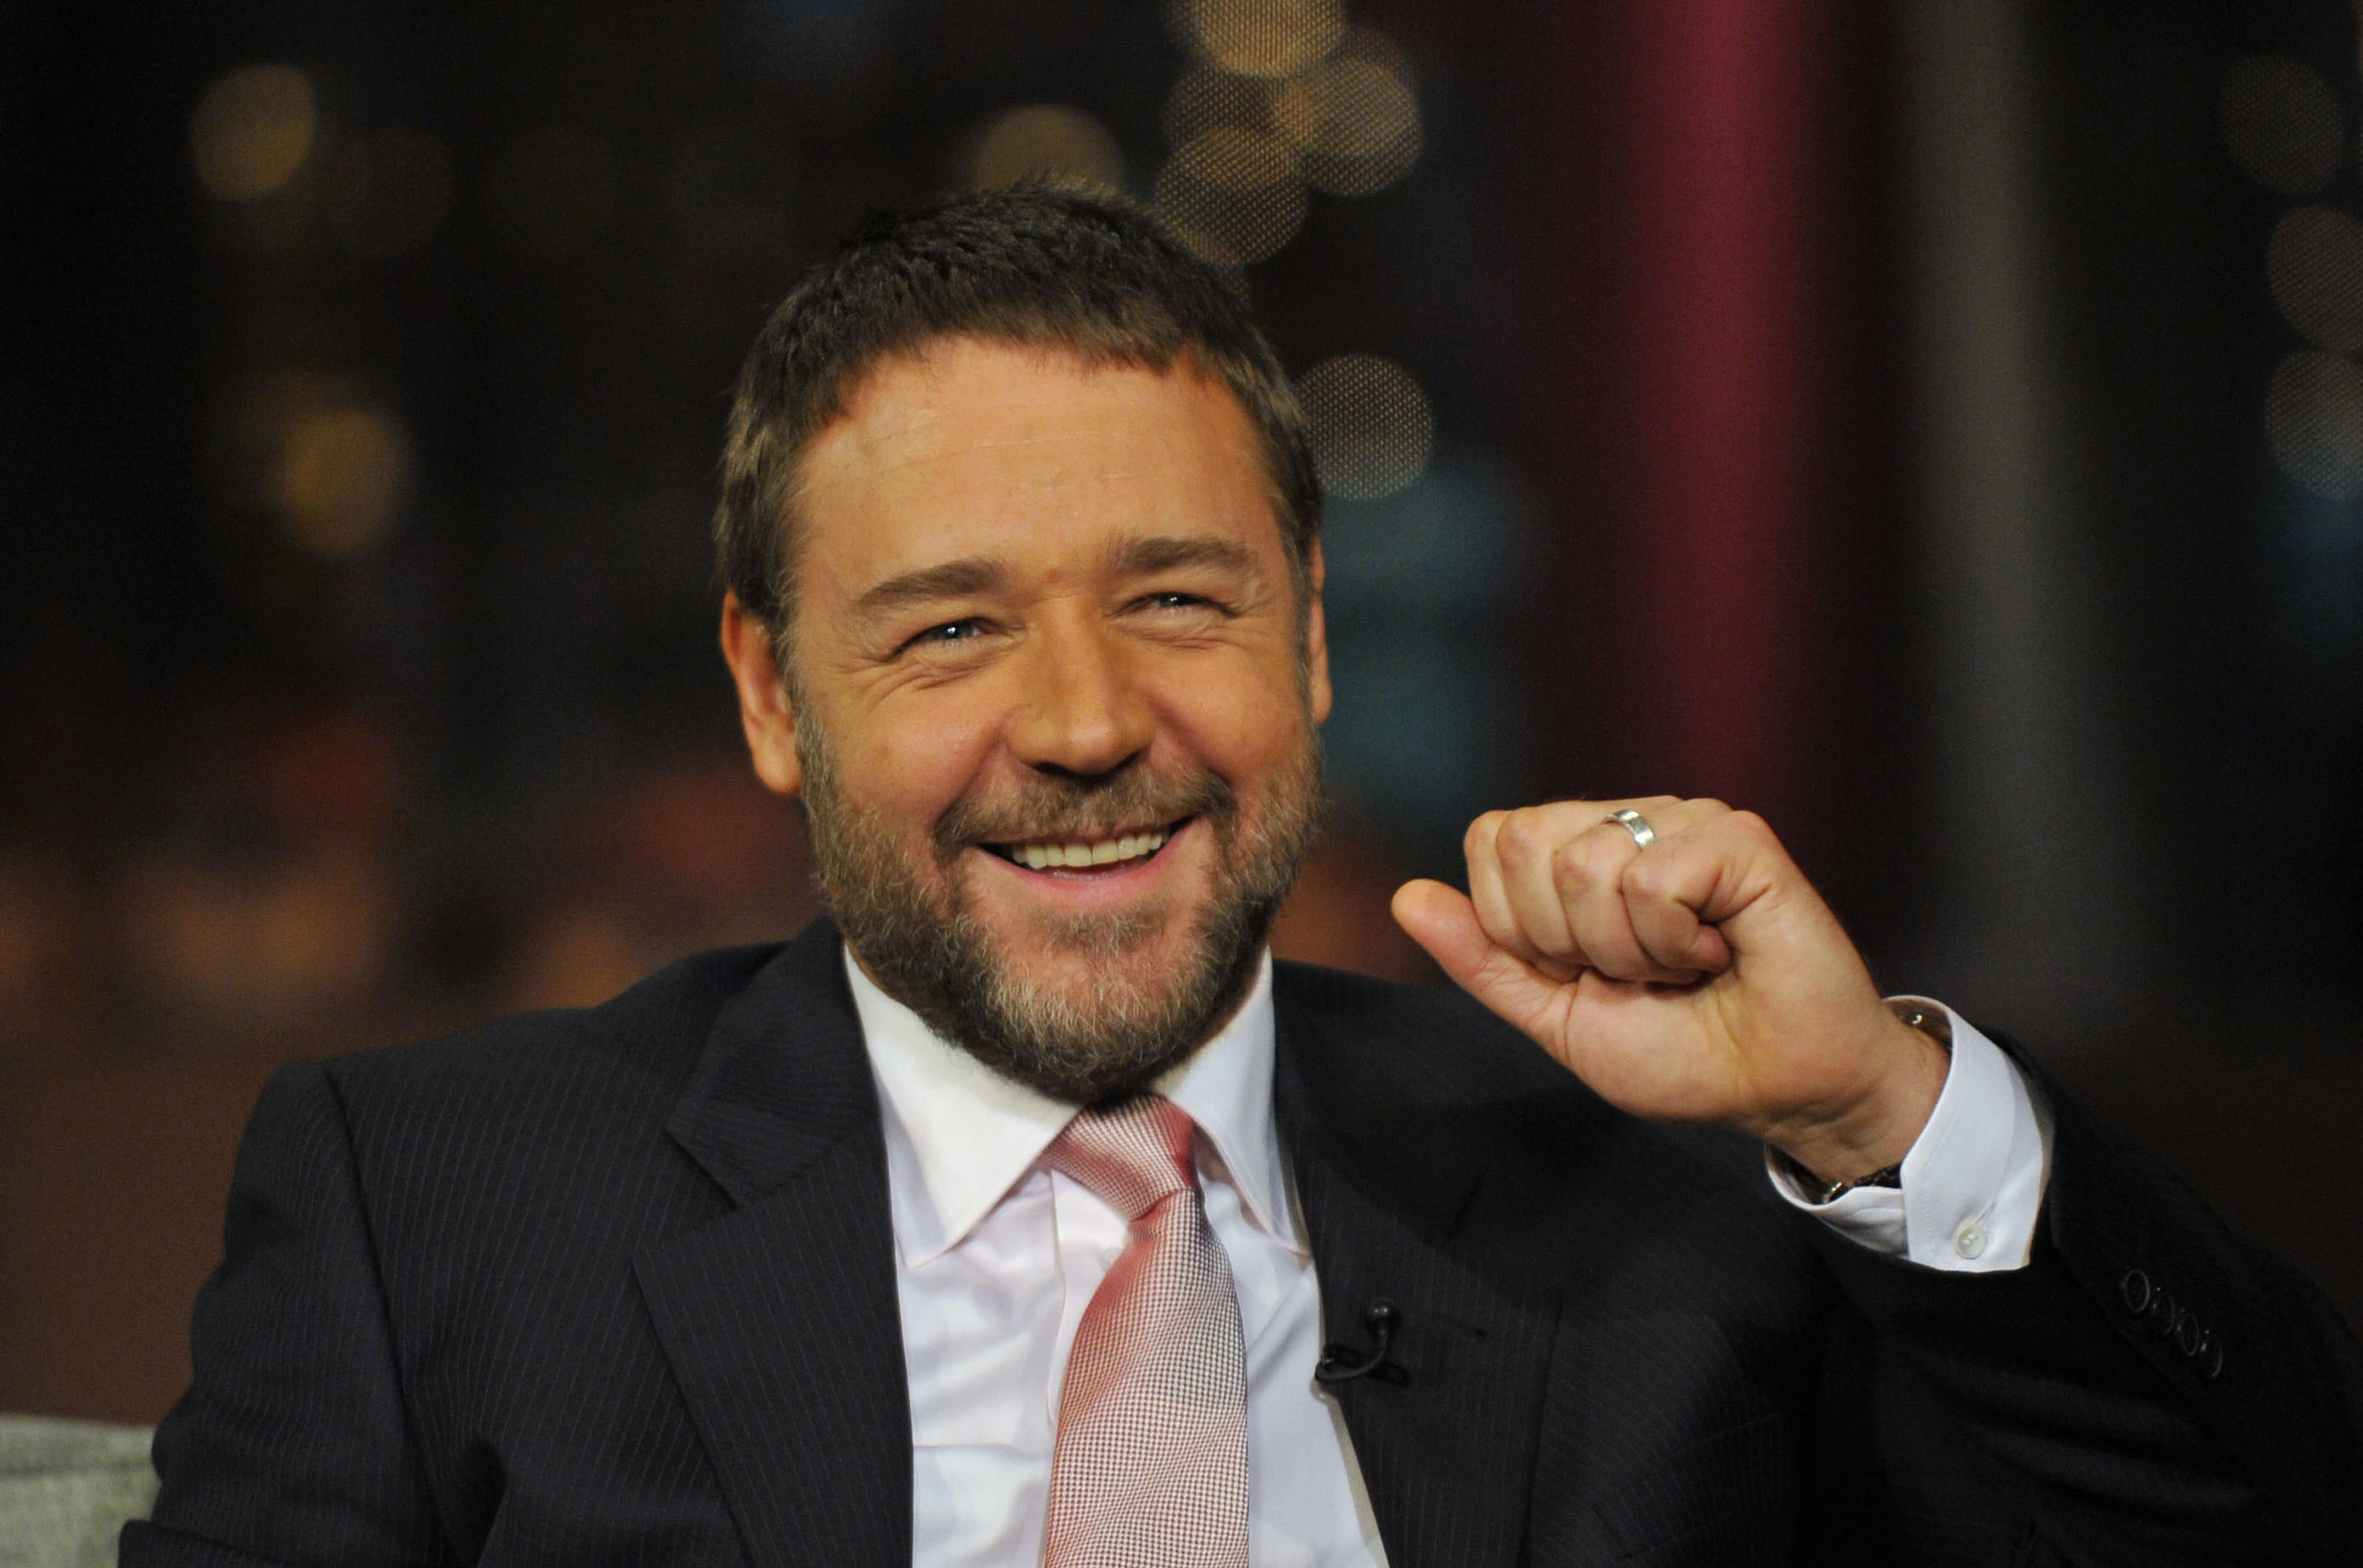 Photo of Russell Crowe smiling